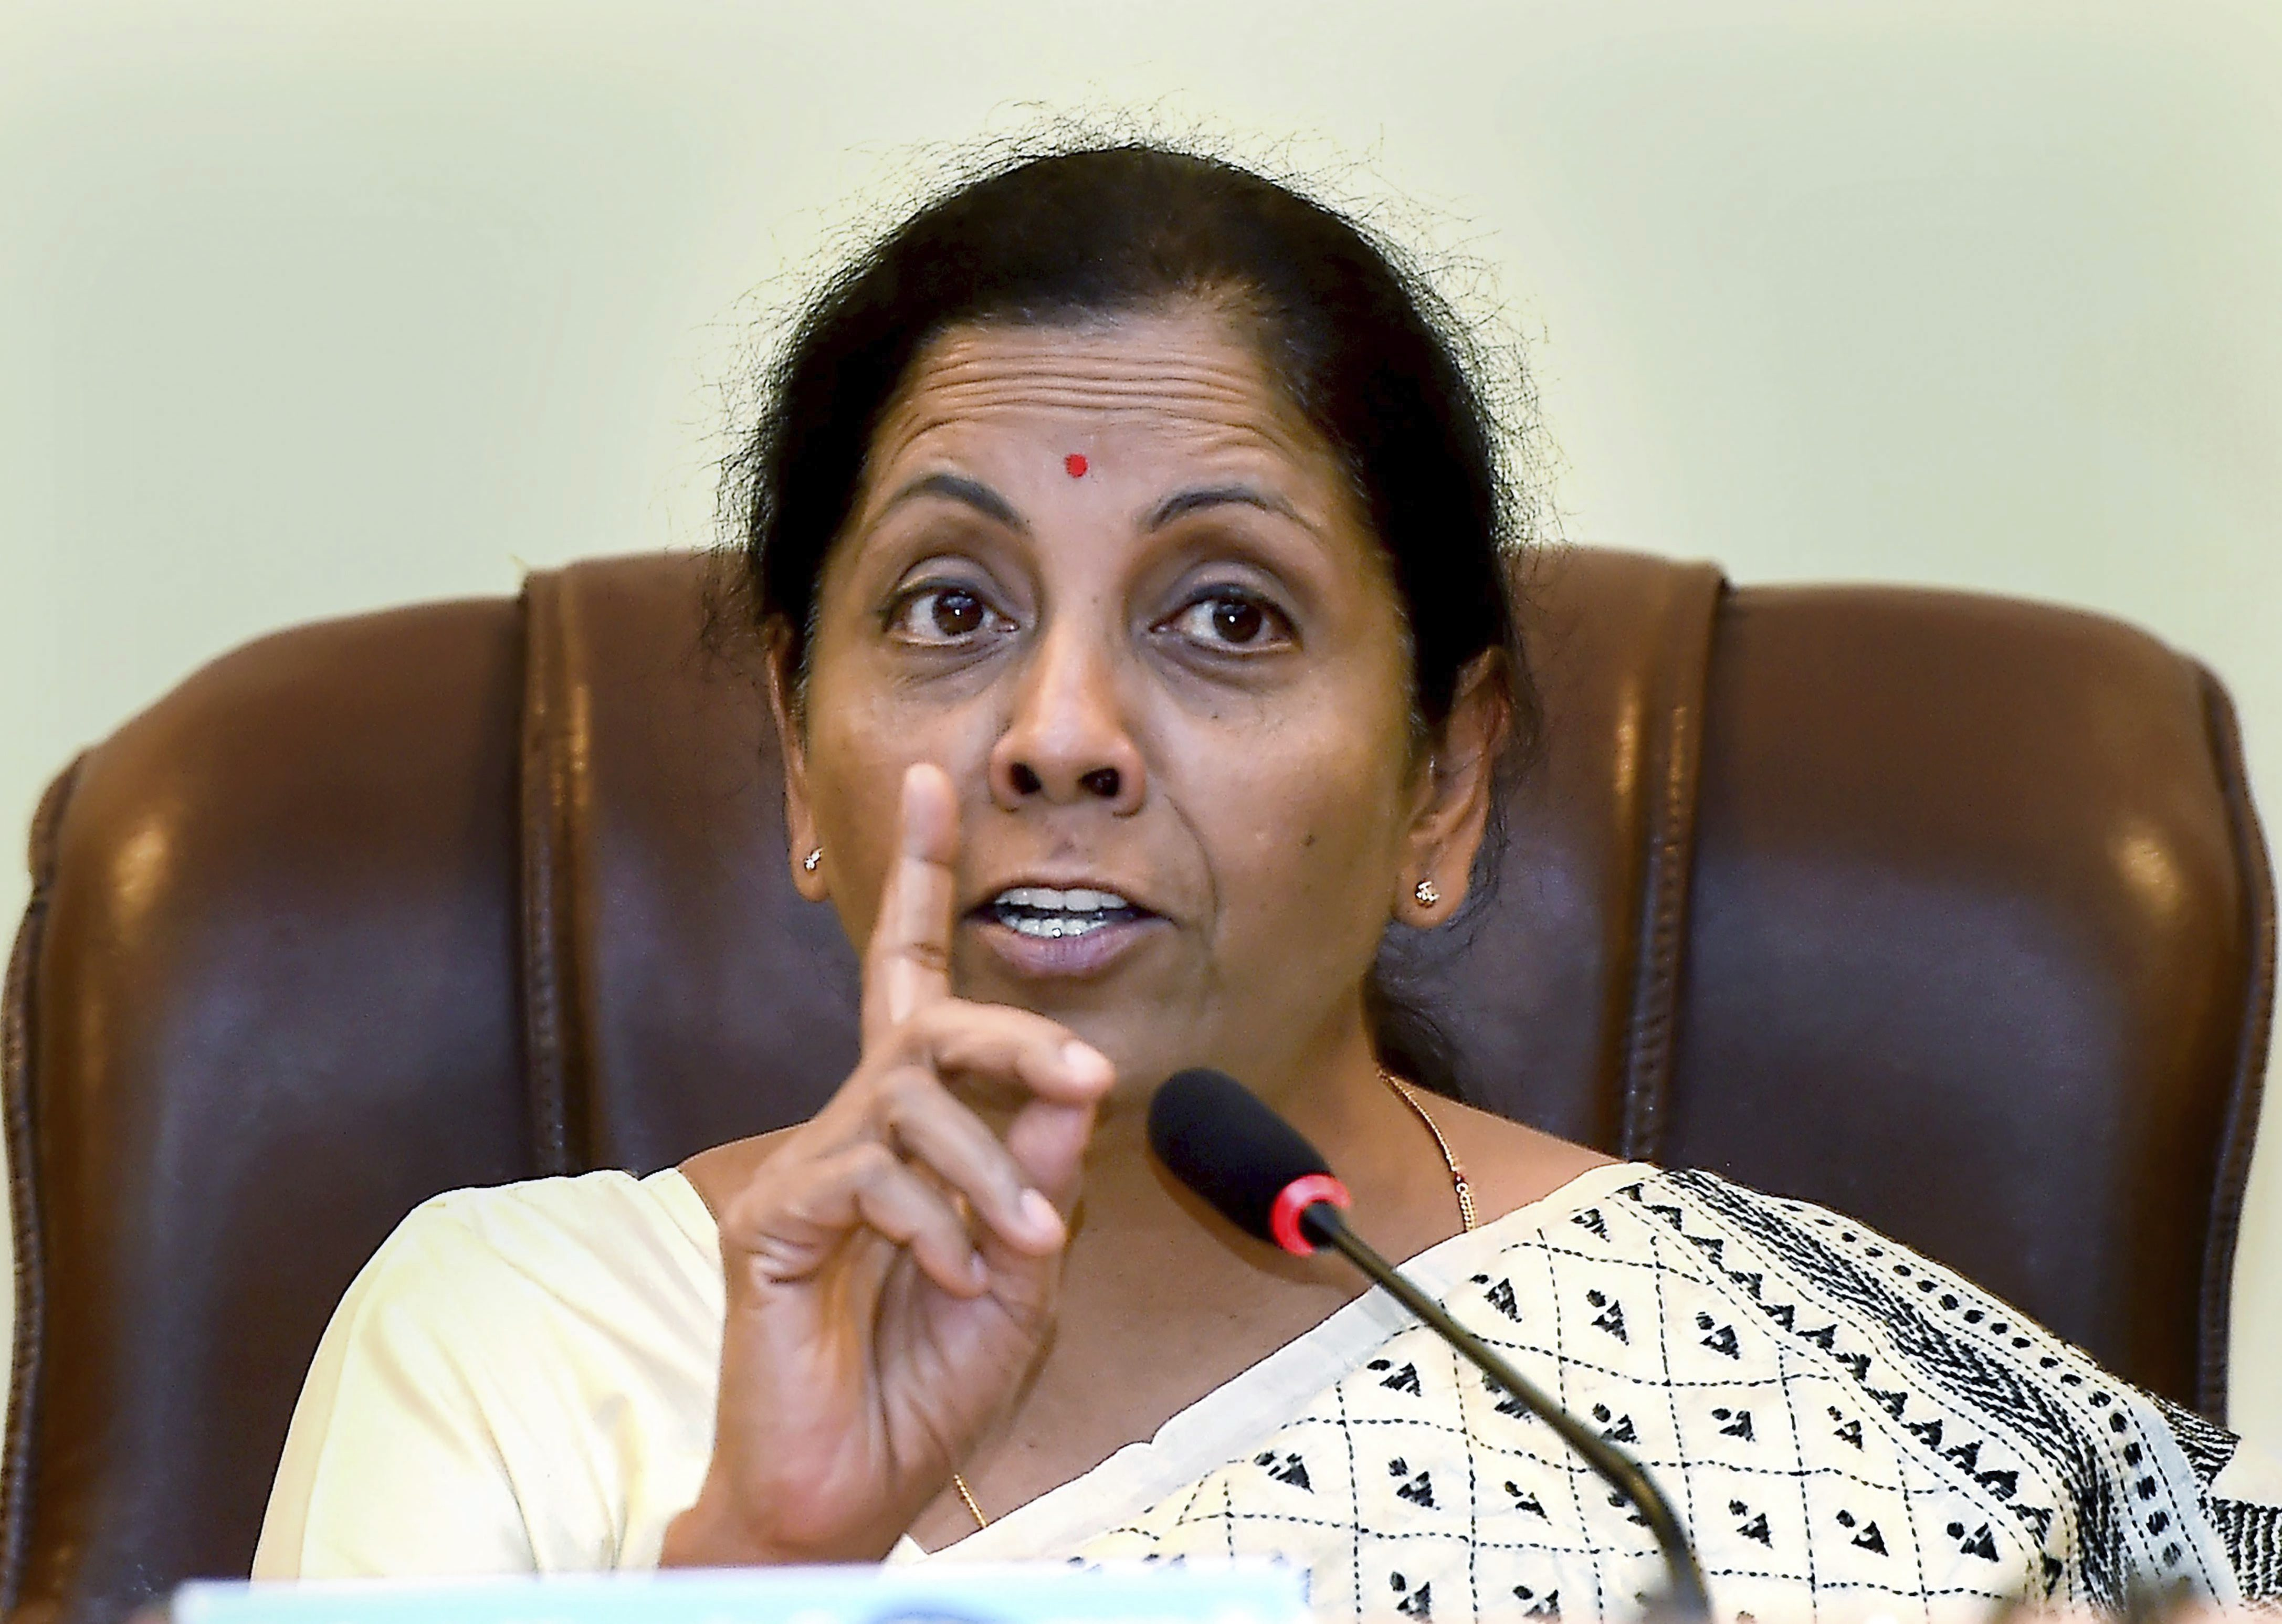 Union Defence Minister Nirmala Sitharaman speaks during a press conference at Yelahanka airforce station in Bengaluru - PTI